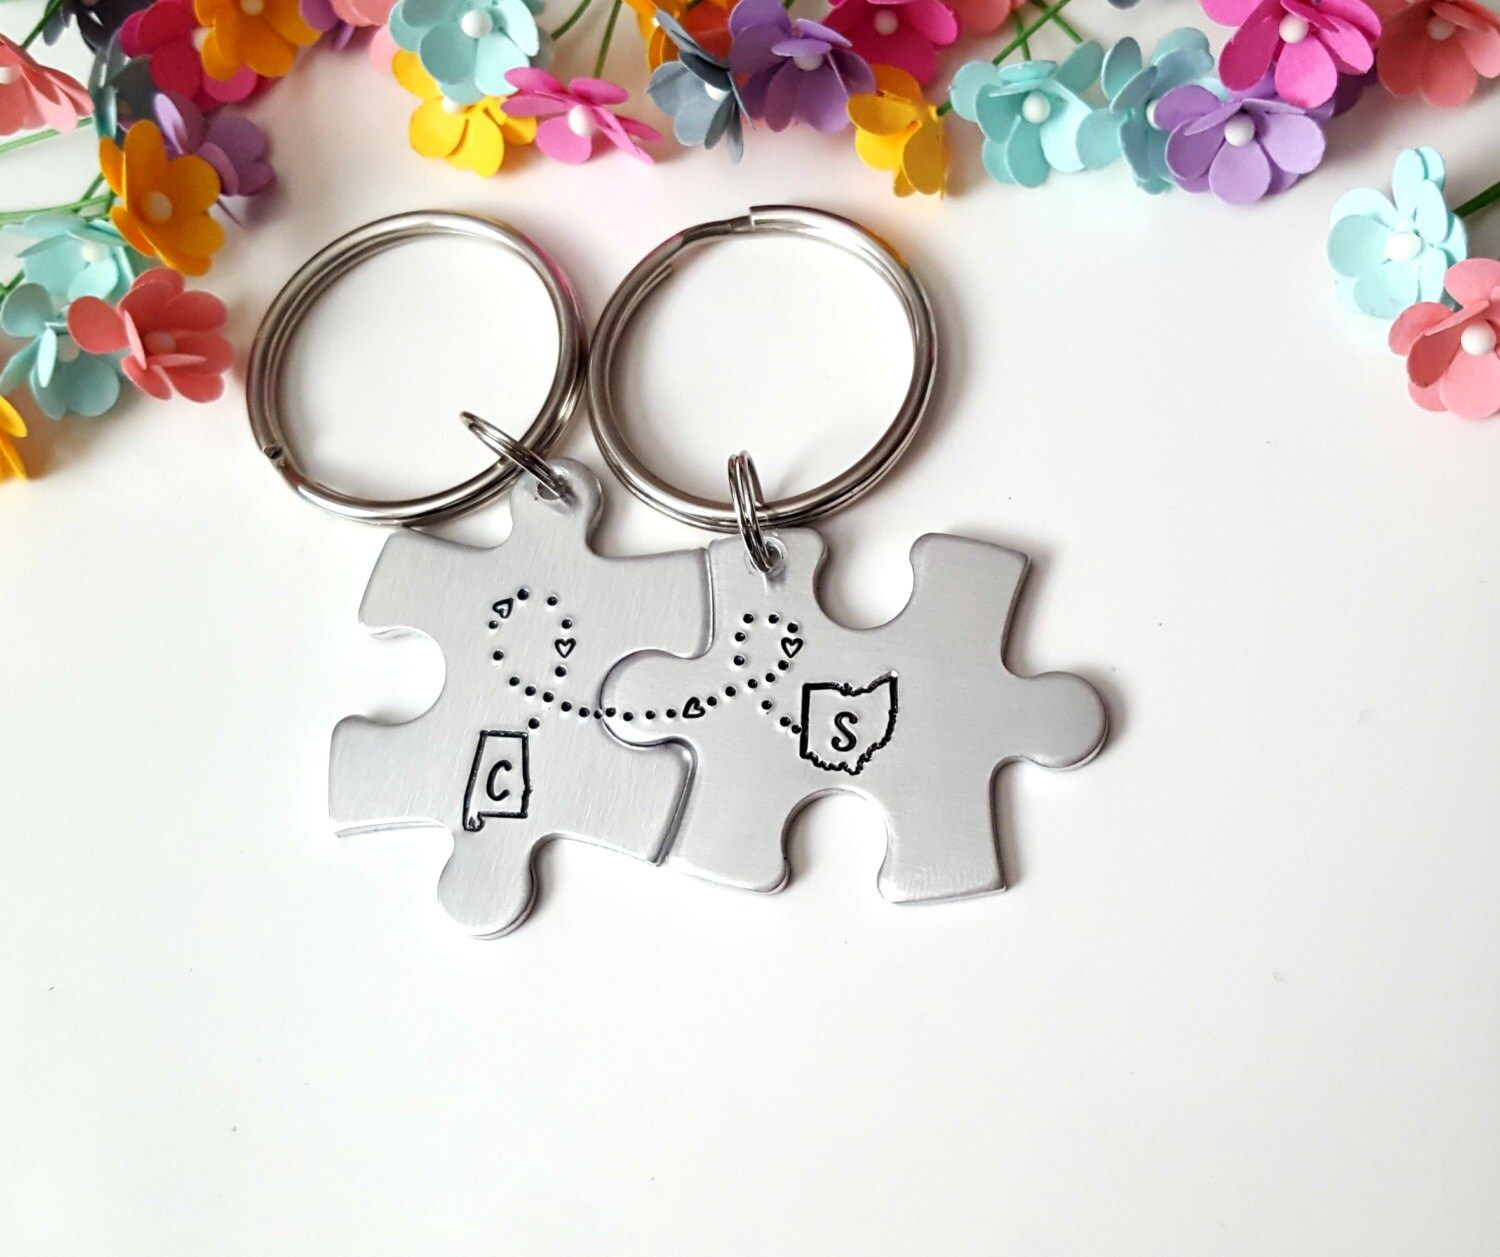 """""""Customizable State Couple Keychains by Cali Girl Customs on Etsy. >> Leave TWO Desired States/ Locations in the Note to Seller Box at check out << We currently offer ALL 50 States, and the following locations - Australia, Canada, Asia, Europe, UK, Africa, South America (see images) ✫✫ If you have any questions or need something customized further please, send us a message. We love custom orders and are always here to help our customers. Thank you ✫✫ ---------------------------------"""